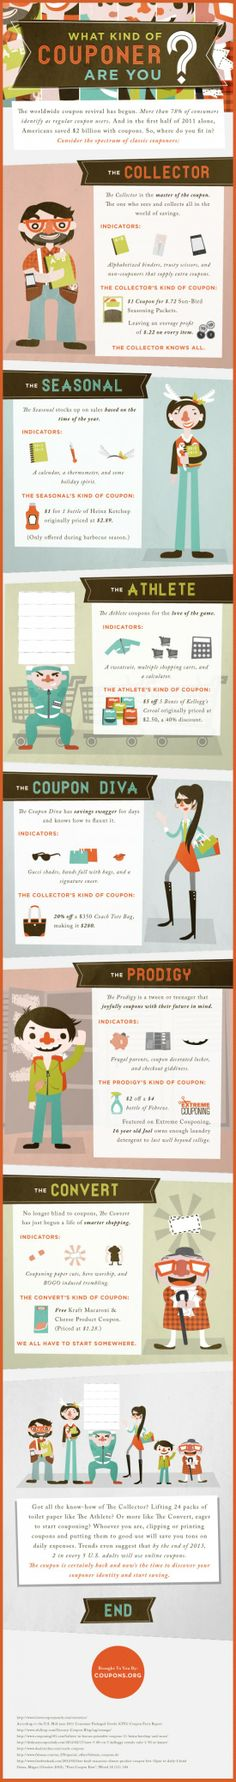 Not every couponer is the same. Some save with their family of seven in mind, while others save with their shoe closet in mind. Different lifestyles means different needs and therefore, different coupons. Luckily, when it comes to online savings and coupon codes, there's room for everybody. In the graphic below, we've concocted a silly little mob of couponing personalities. Each one is our own take on a member of the couponing family, along with an example of their cut-out of choice. Where…